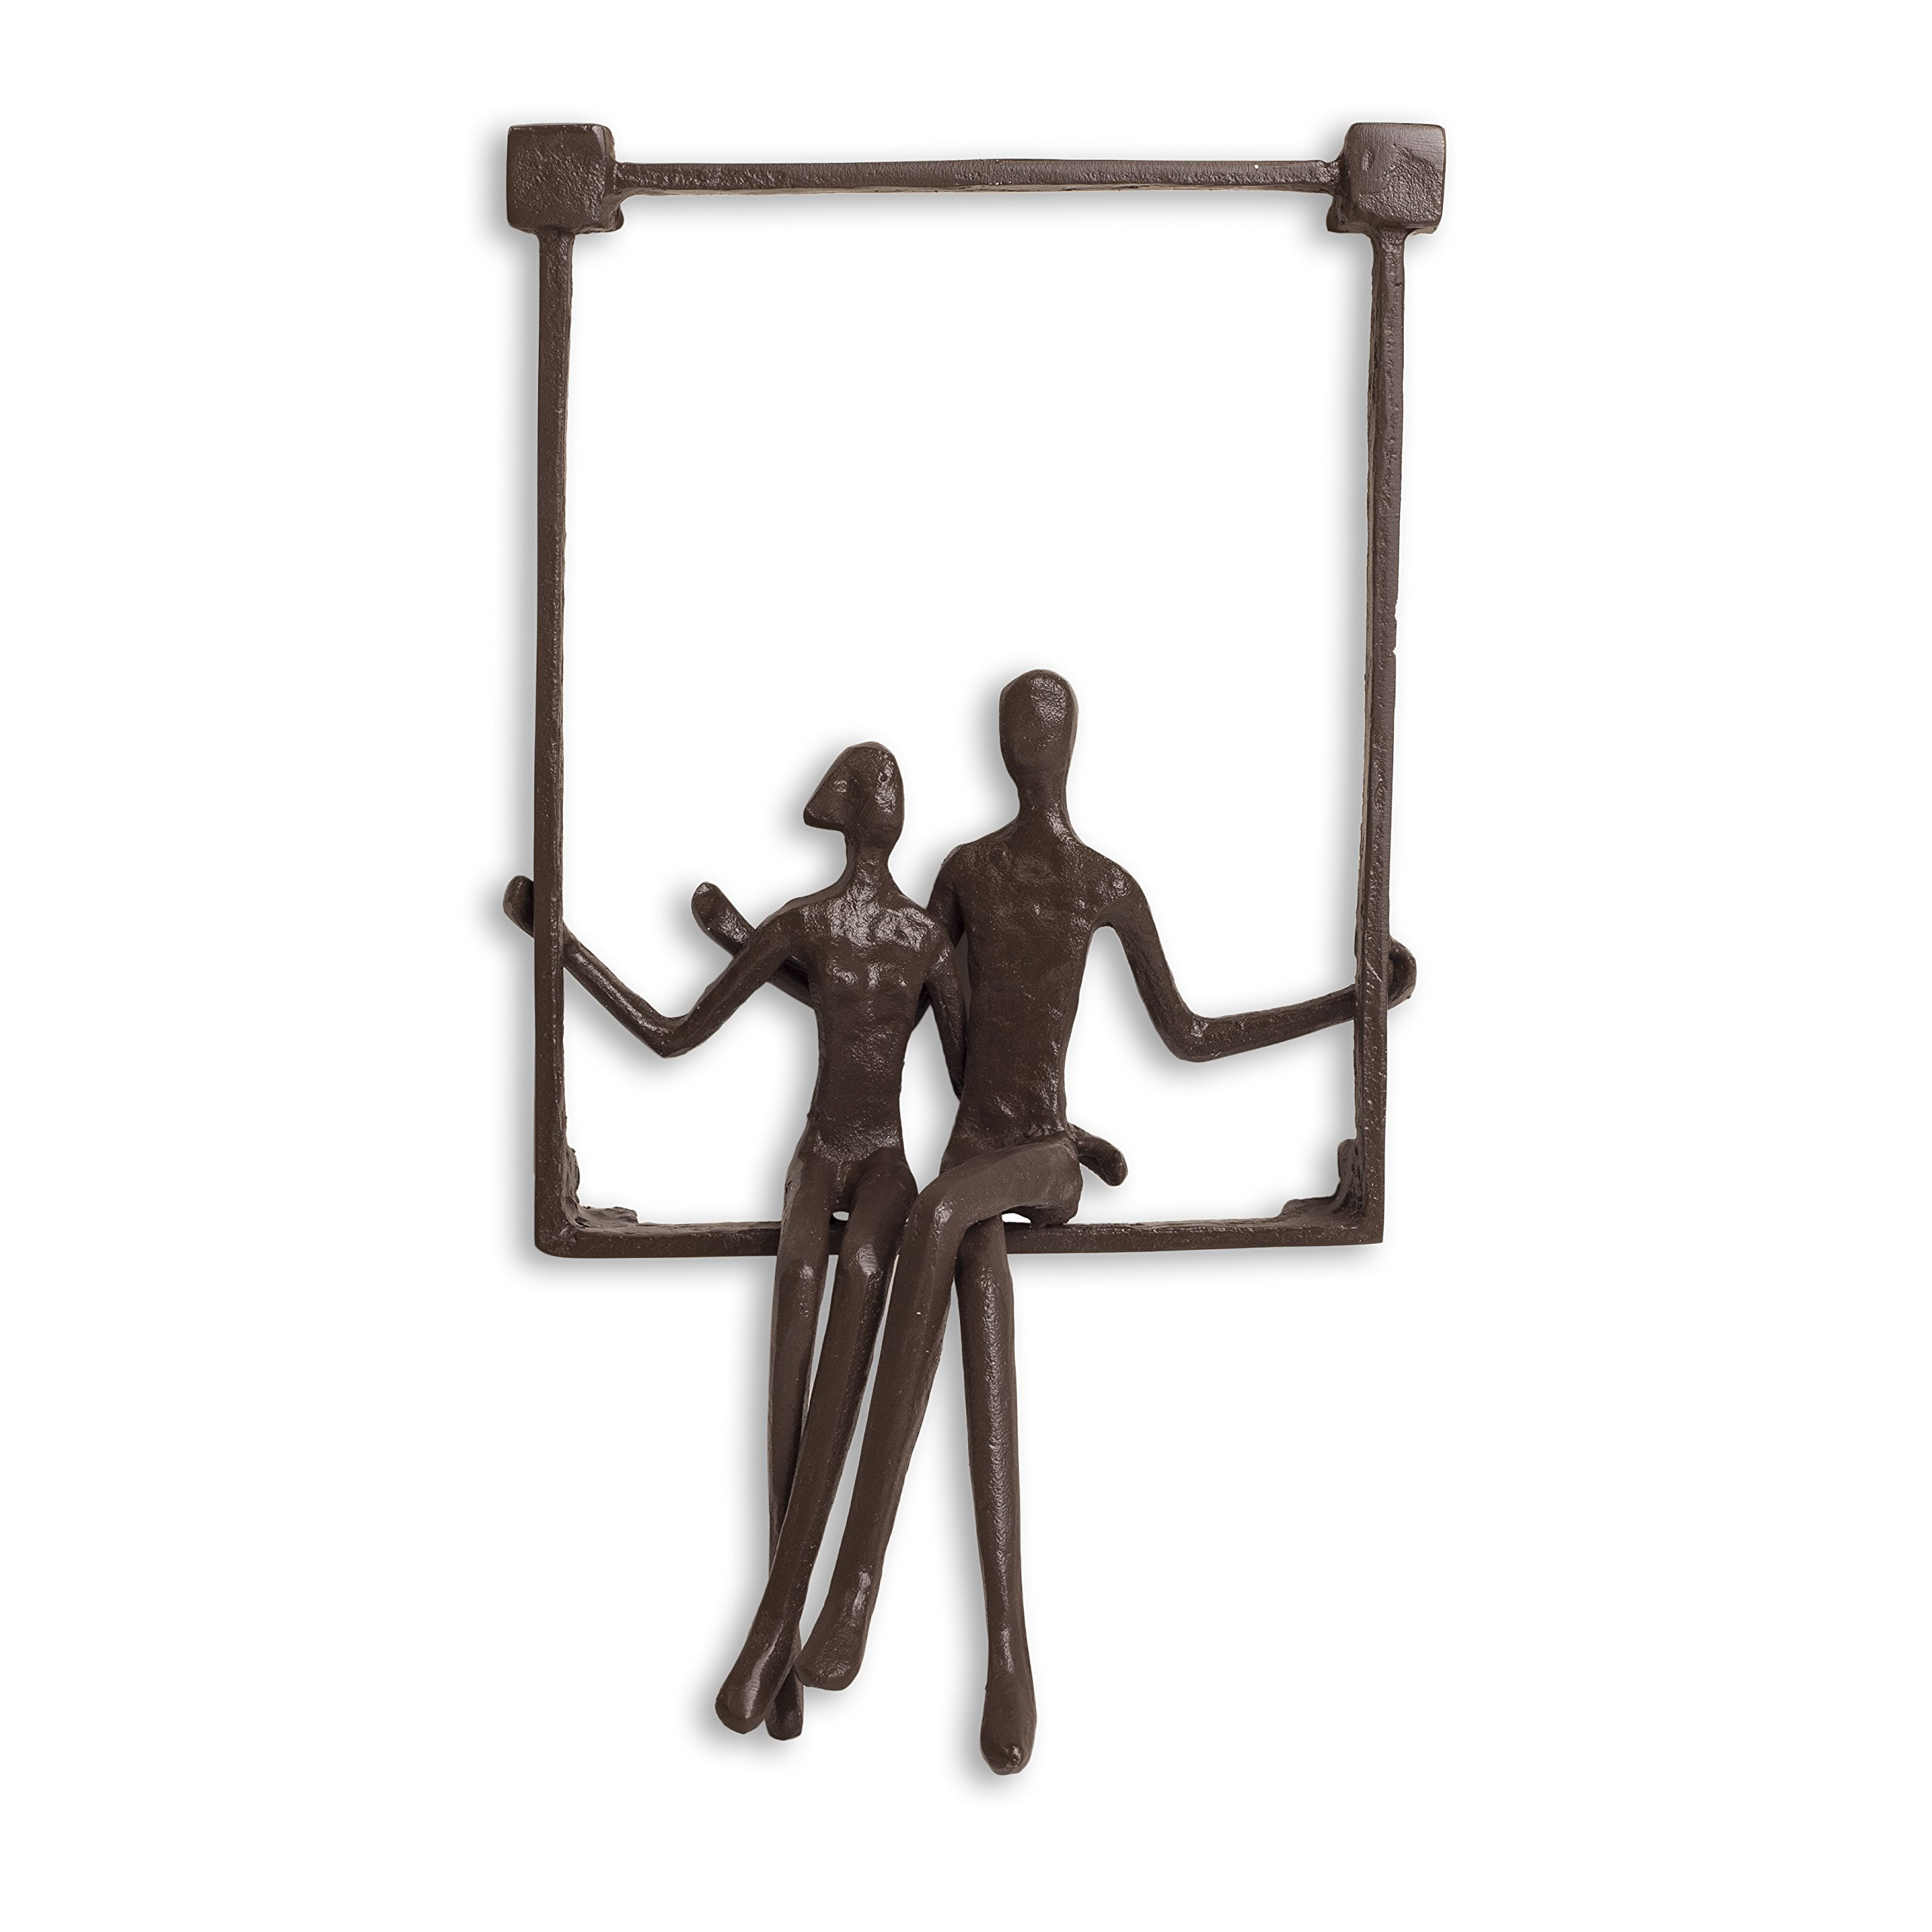 Danya B. ZI15214 Hanging Metal Wall Art Iron Sculpture - Couple Sitting on a Window Sill by Danya B